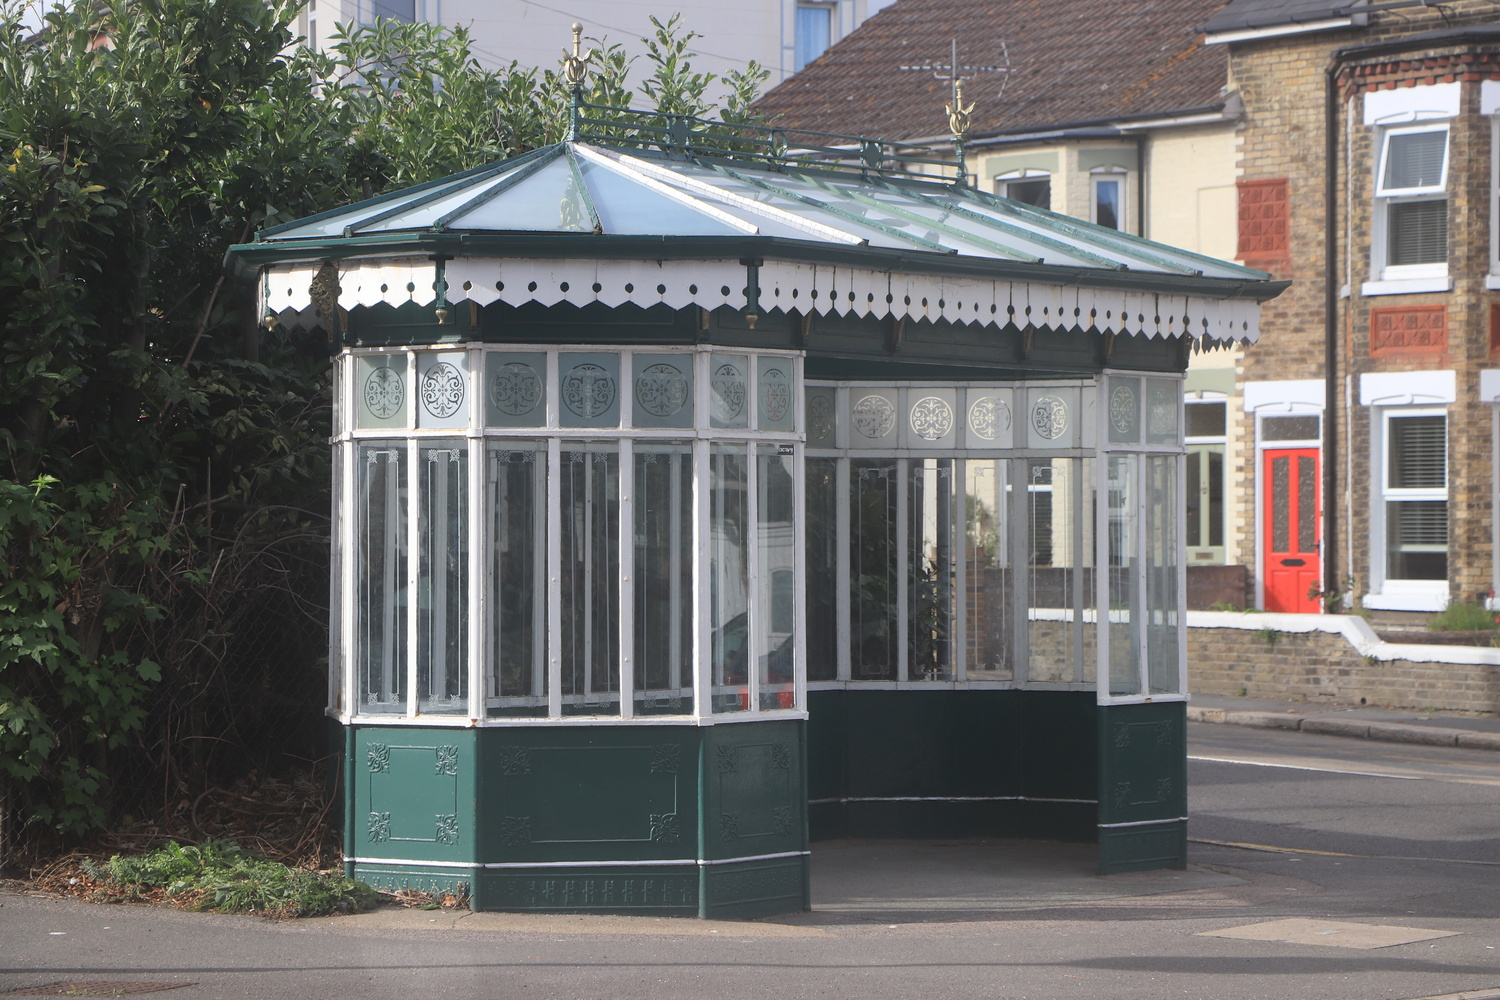 Bus Shelter by Kevin Sanders